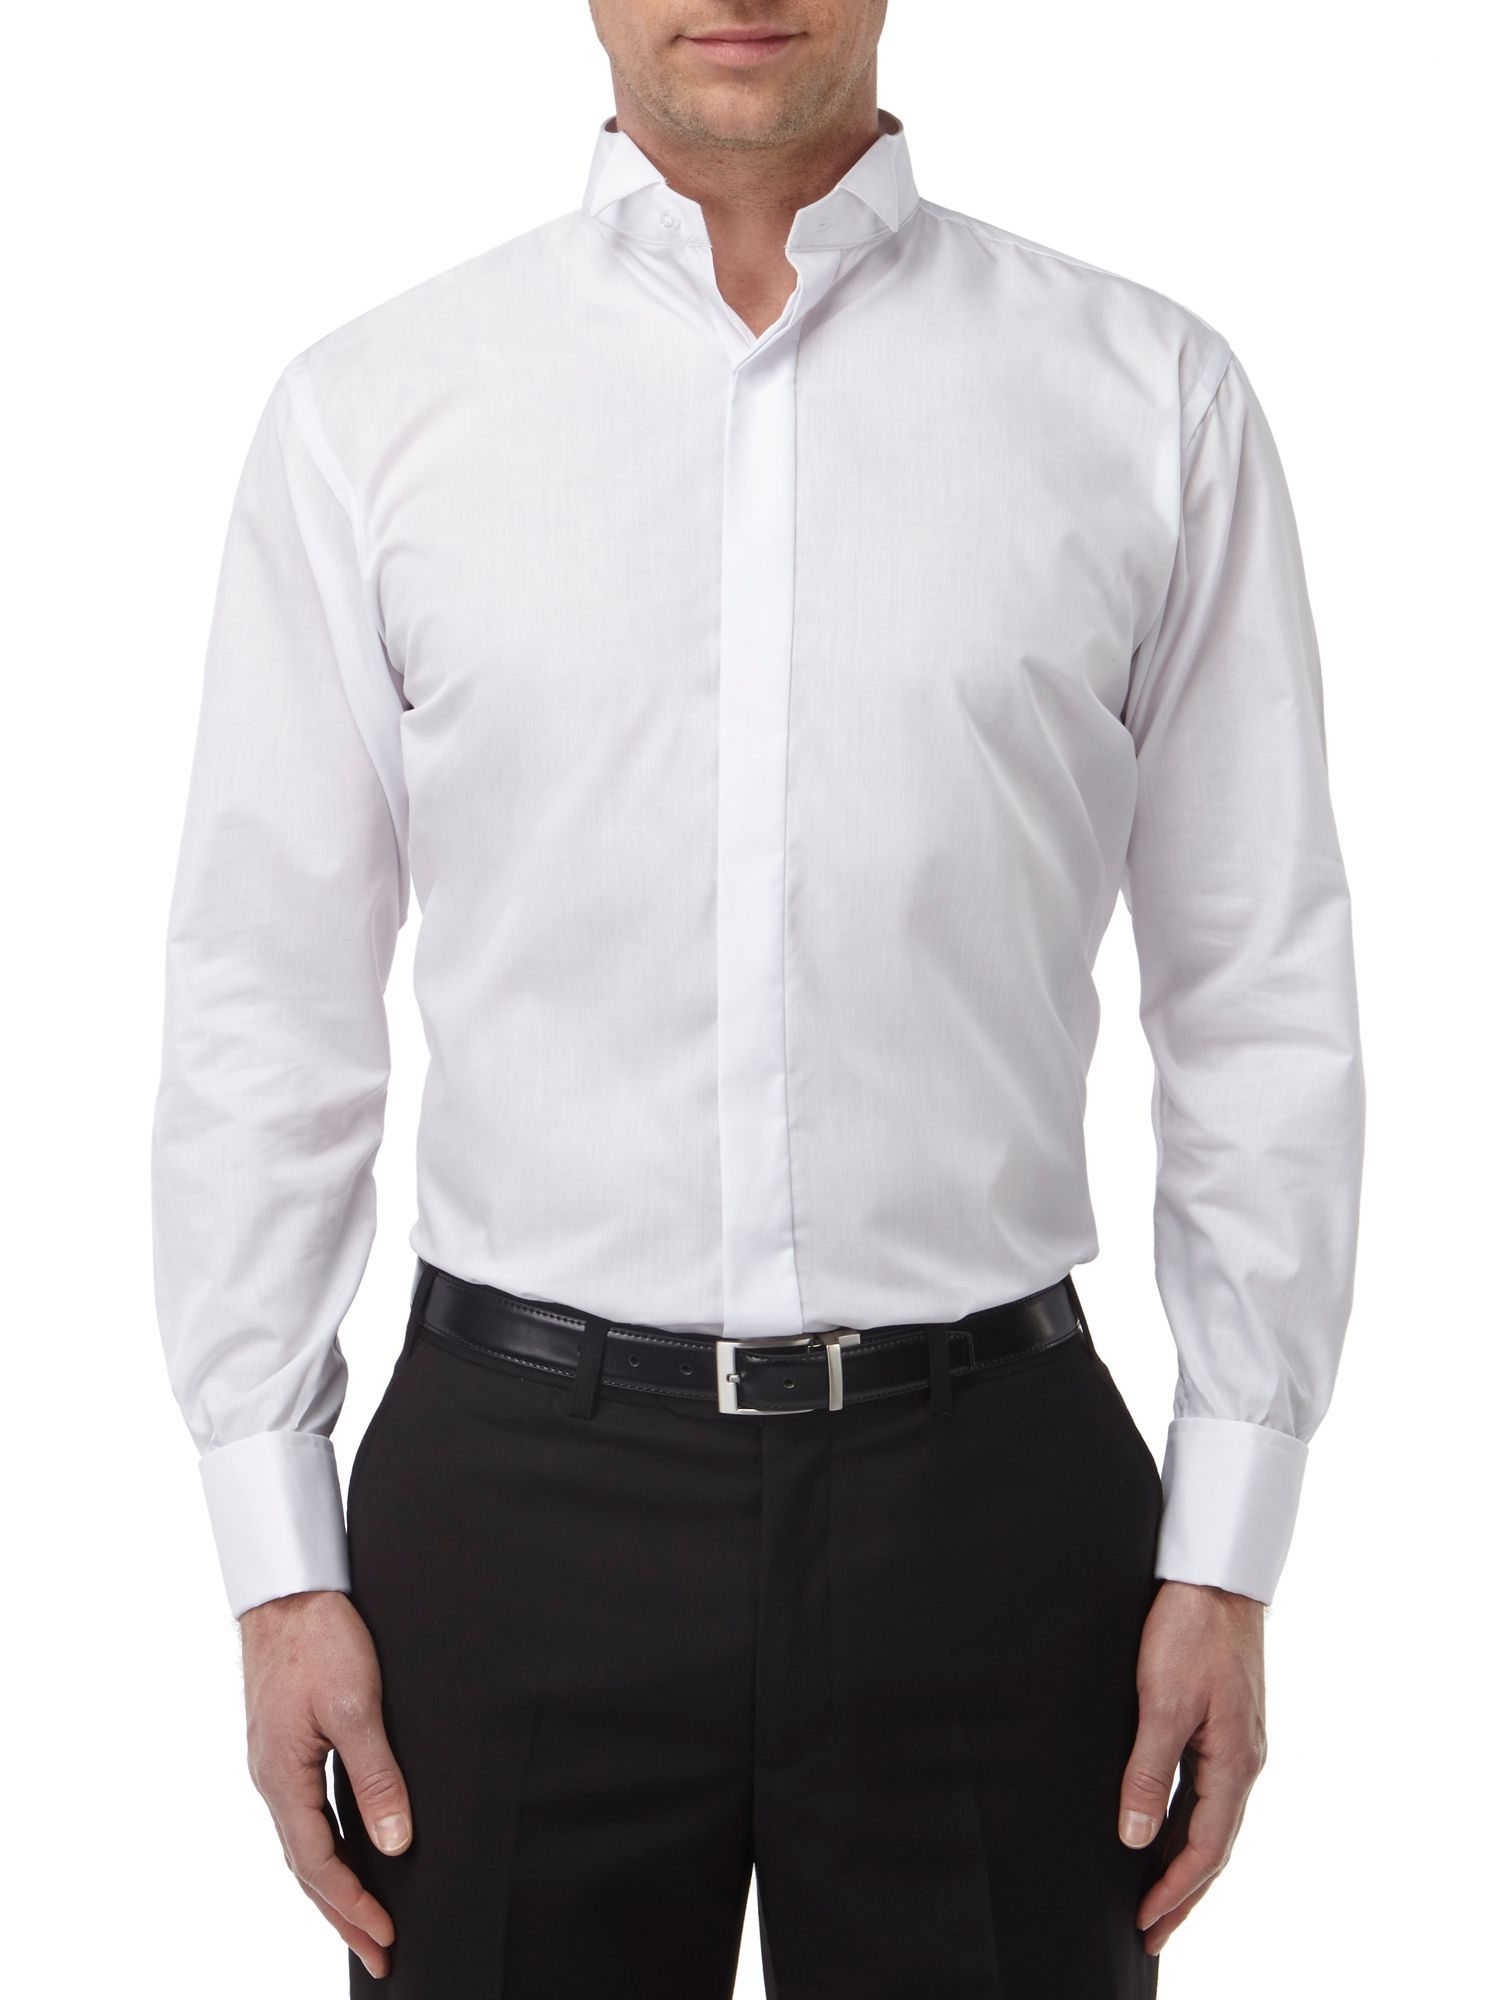 Easy care slim fit dress shirt